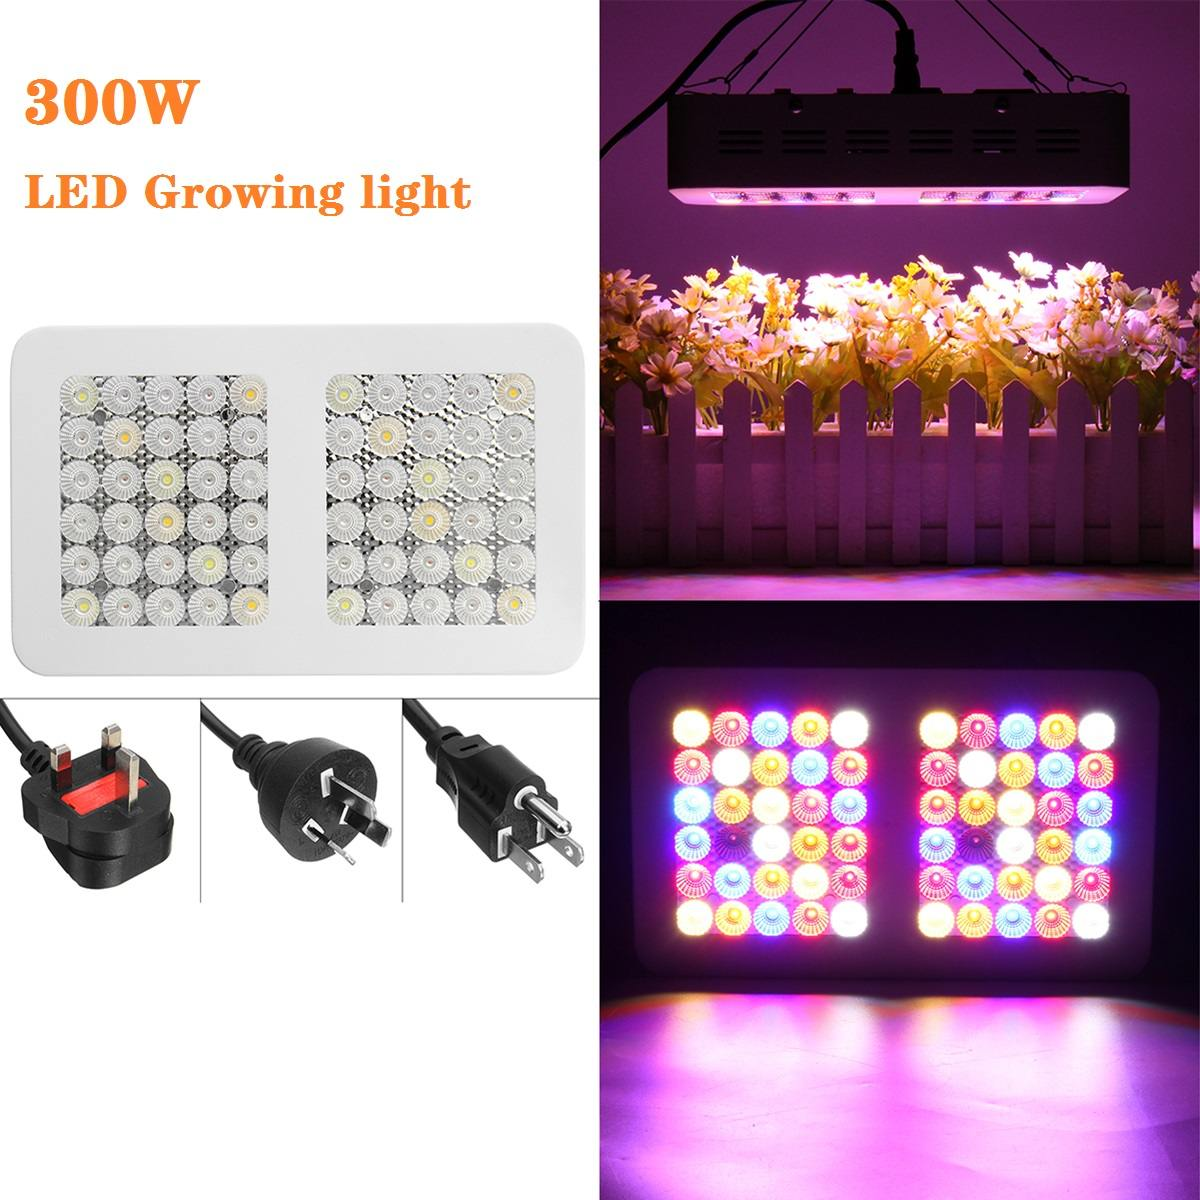 300W Plant Grow Light Full Spectrum Led Grow Lights LED Panel Lamps For Hydroponic Vegs Flower Growing Tent Lighting For Indoor